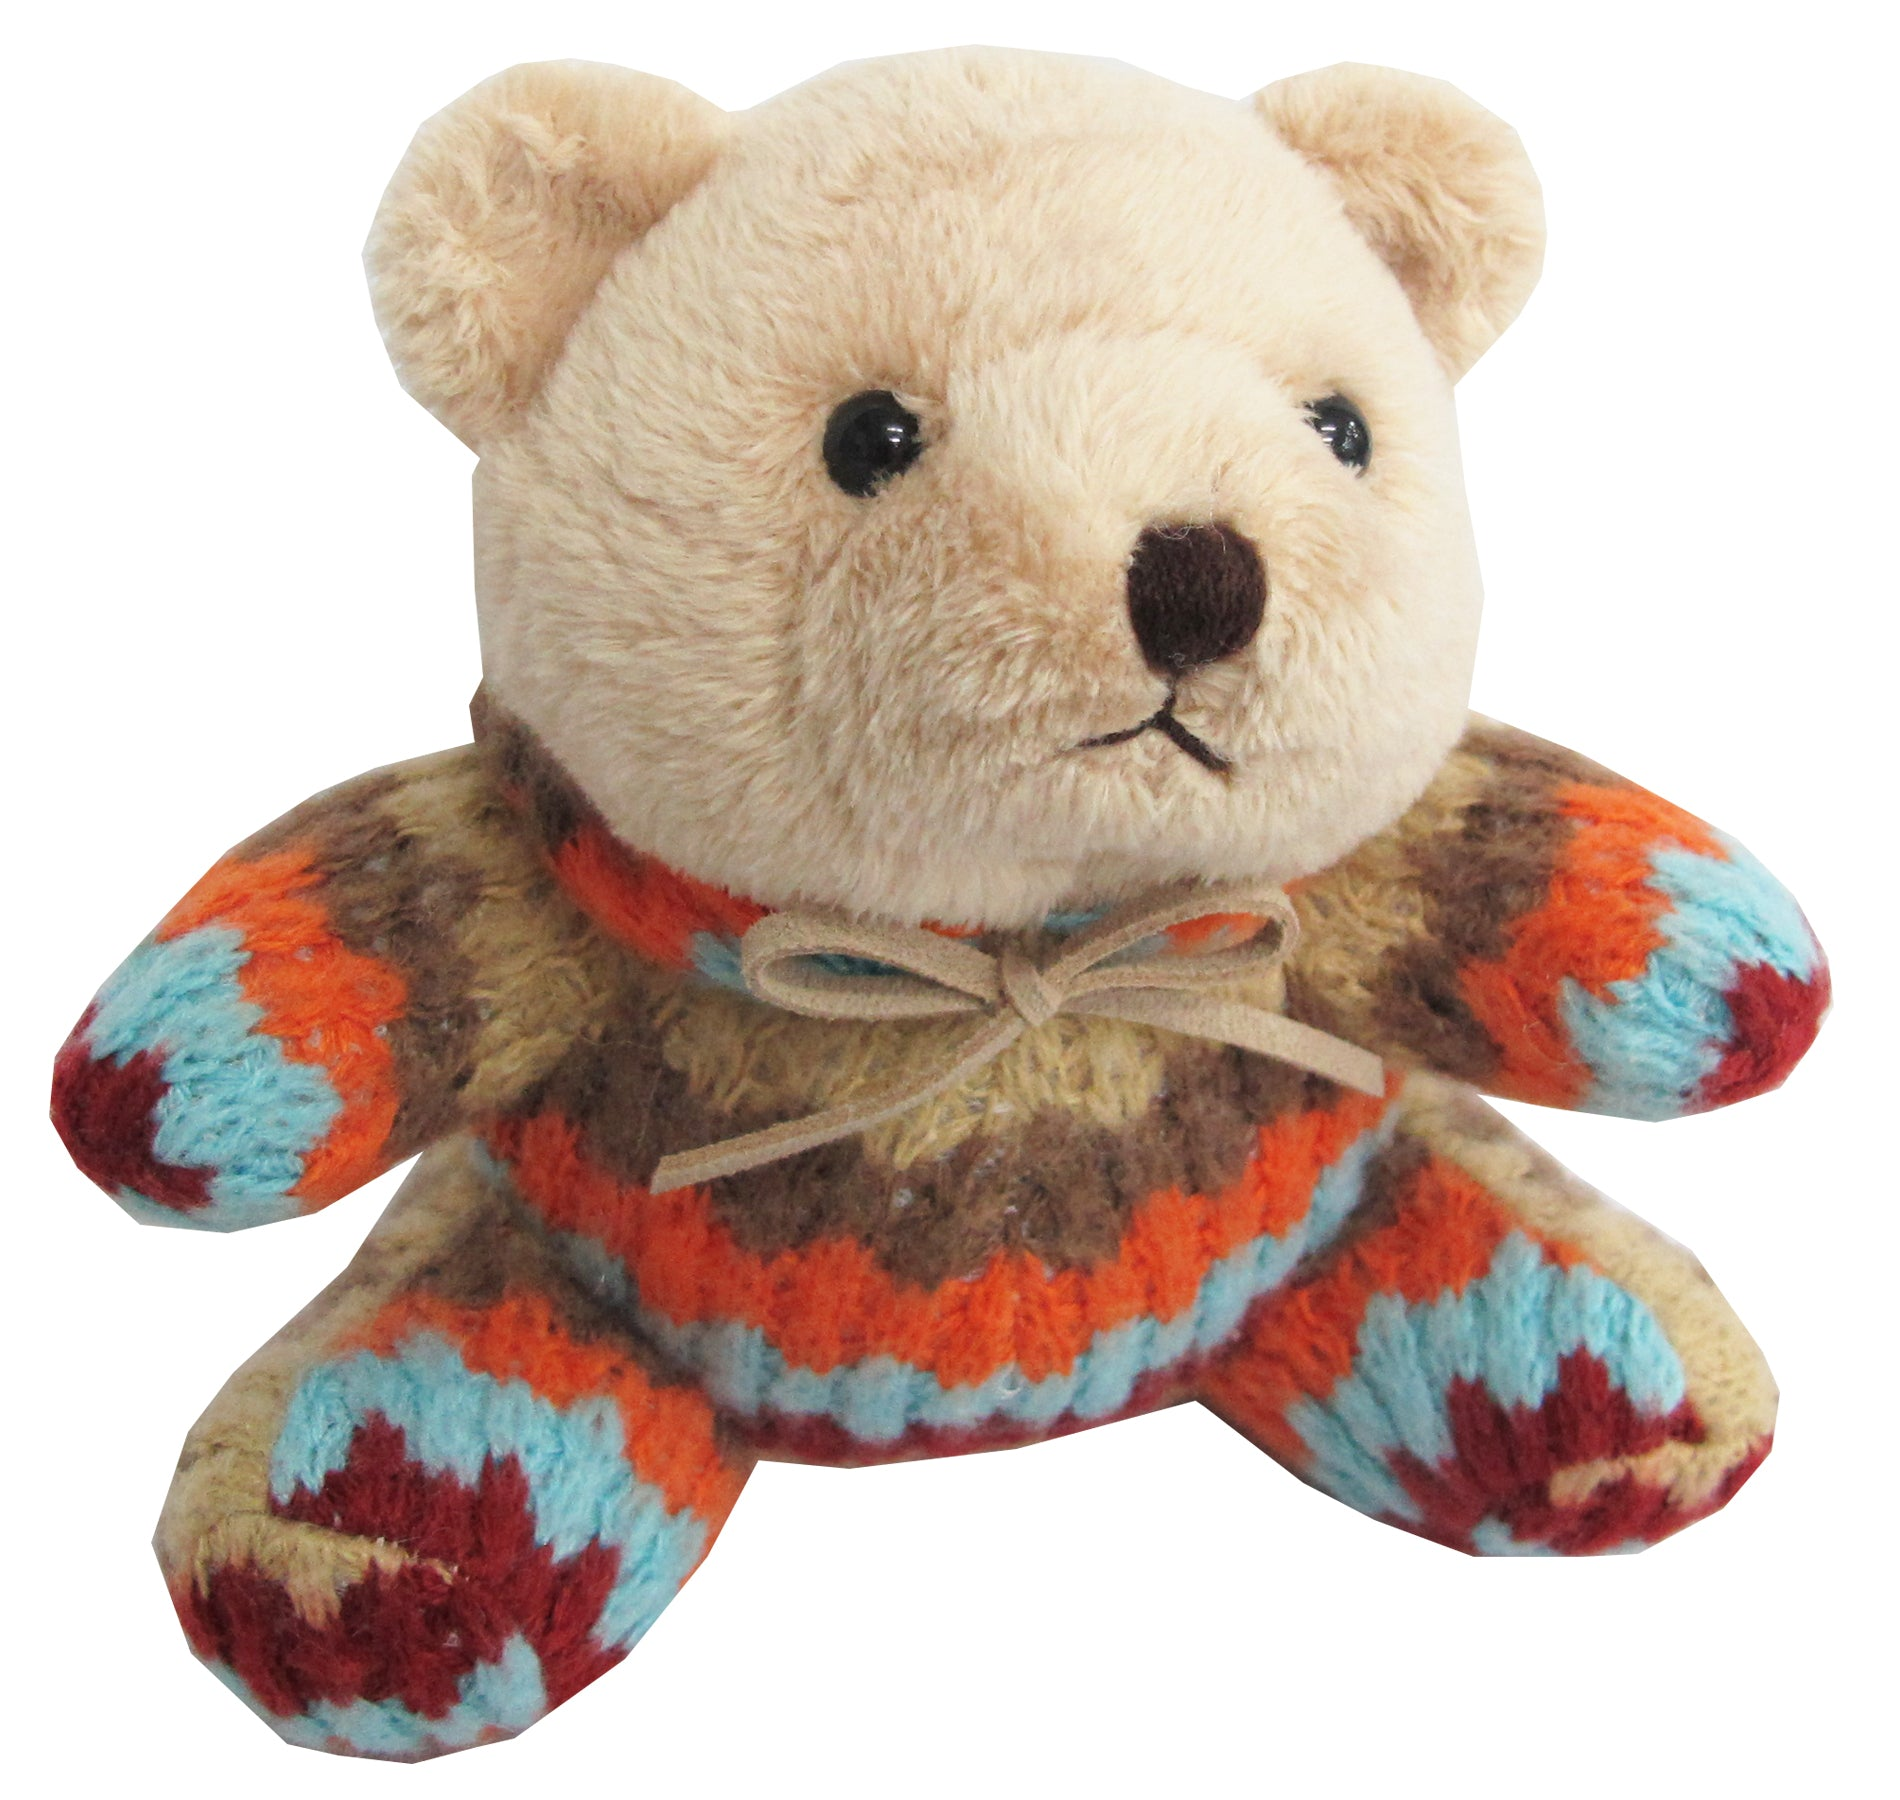 TEDDY HOUSE BONEKA TEDDY BEAR TEDDY AUTUMN 05 INCHI